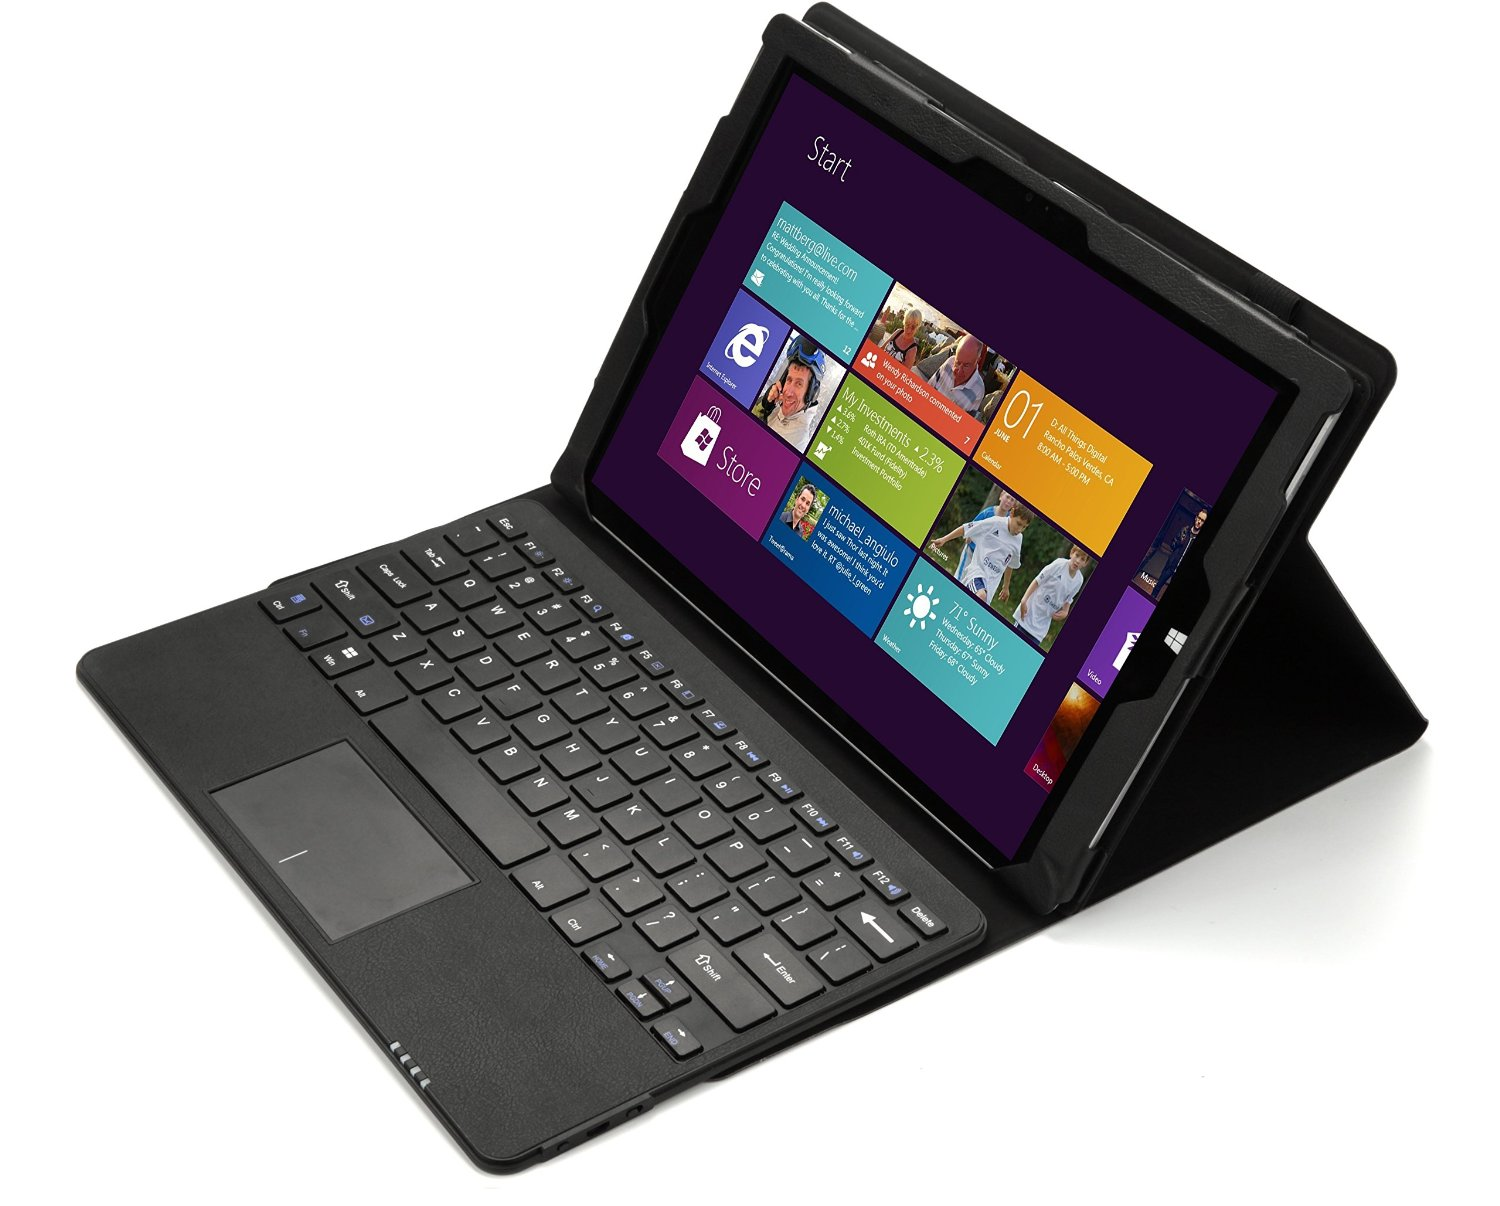 Top 10 microsoft surface pro 3 cases covers best microsoft surface pro - Best Microsoft Surface Pro 4 Cases Covers Top Surface Pro 4 Case Cover7